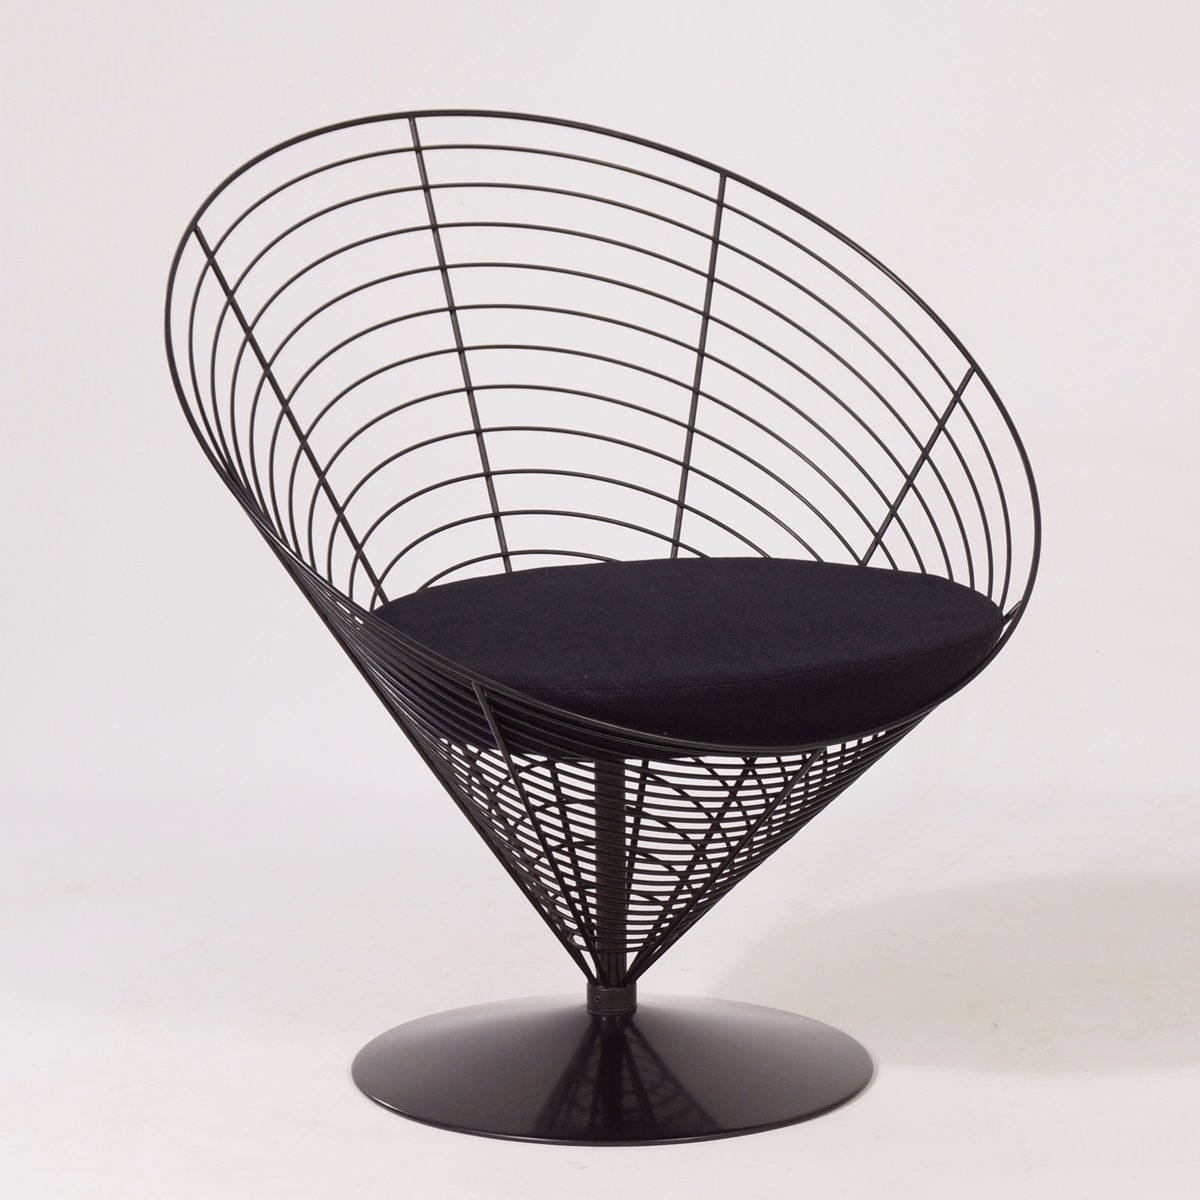 wire cone table with two wire cone chairs by verner panton for fritz hansen 1988 for sale at pamono. Black Bedroom Furniture Sets. Home Design Ideas